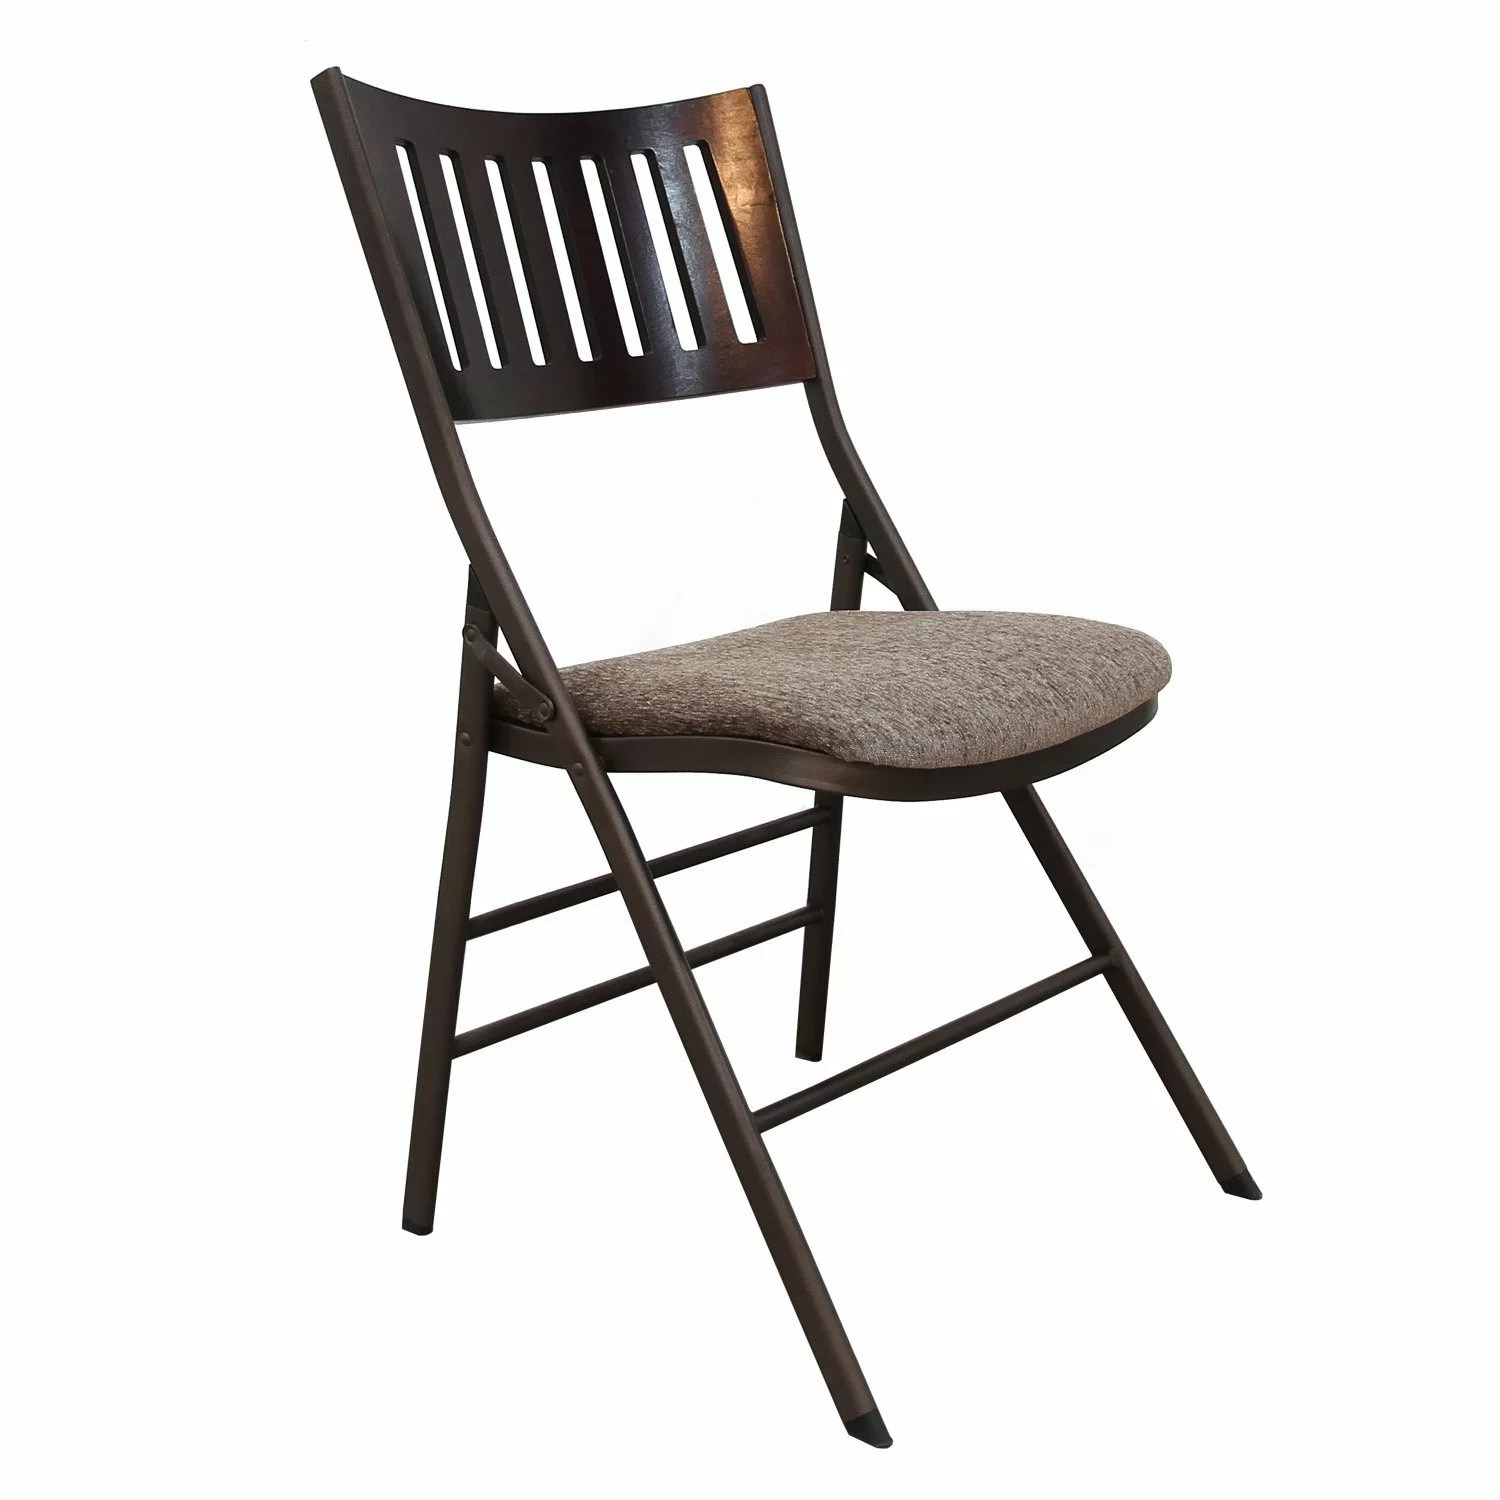 Fabric Folding Chairs Adecotrading Tubular Steel Folding Chair And Reviews Wayfair